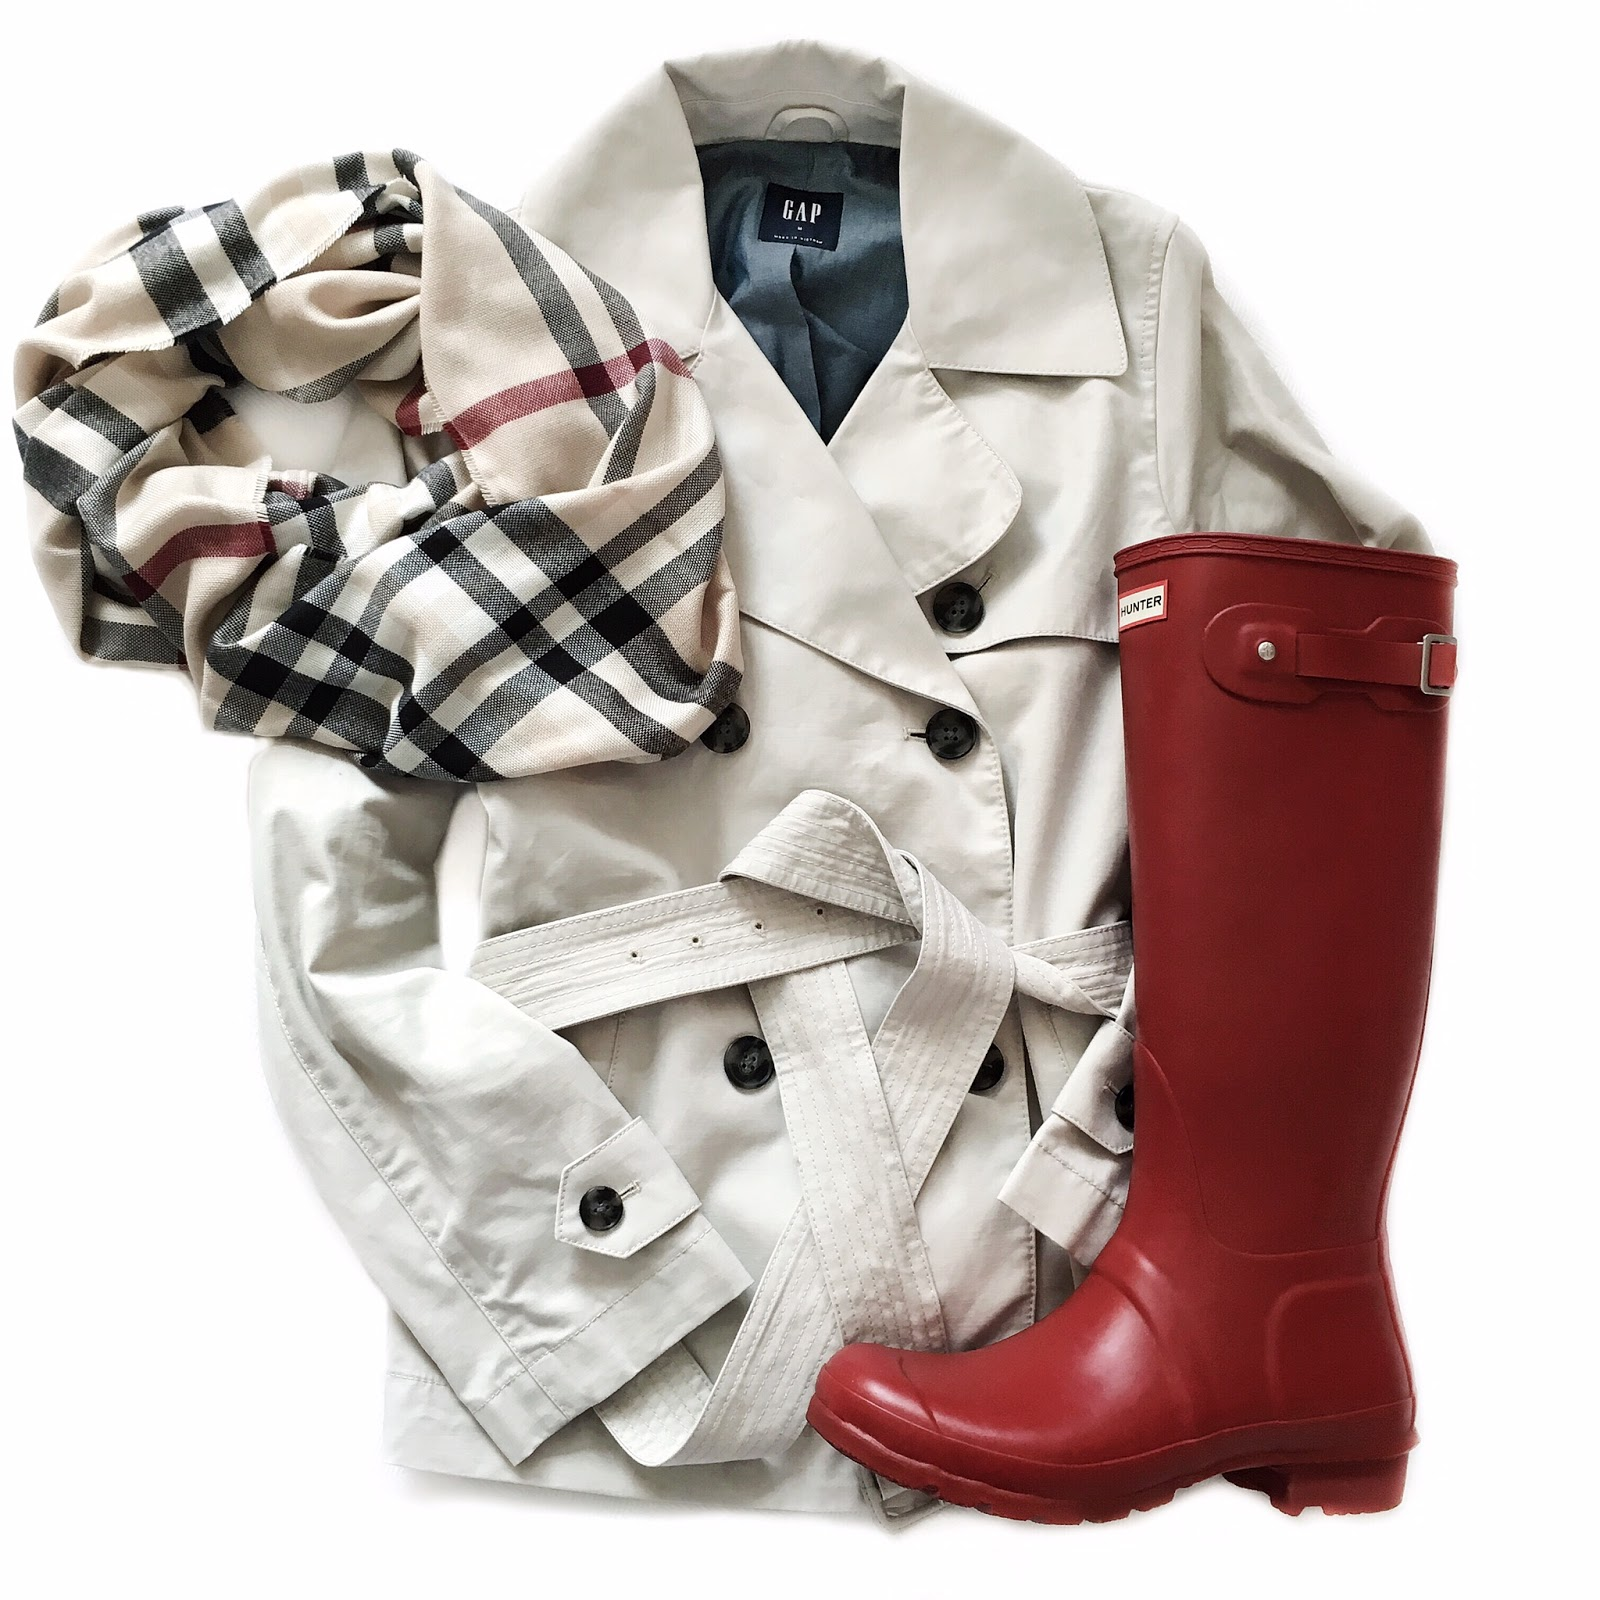 Gap Cropped Trench Coat, Red Hunter Boots & Plaid Scarf